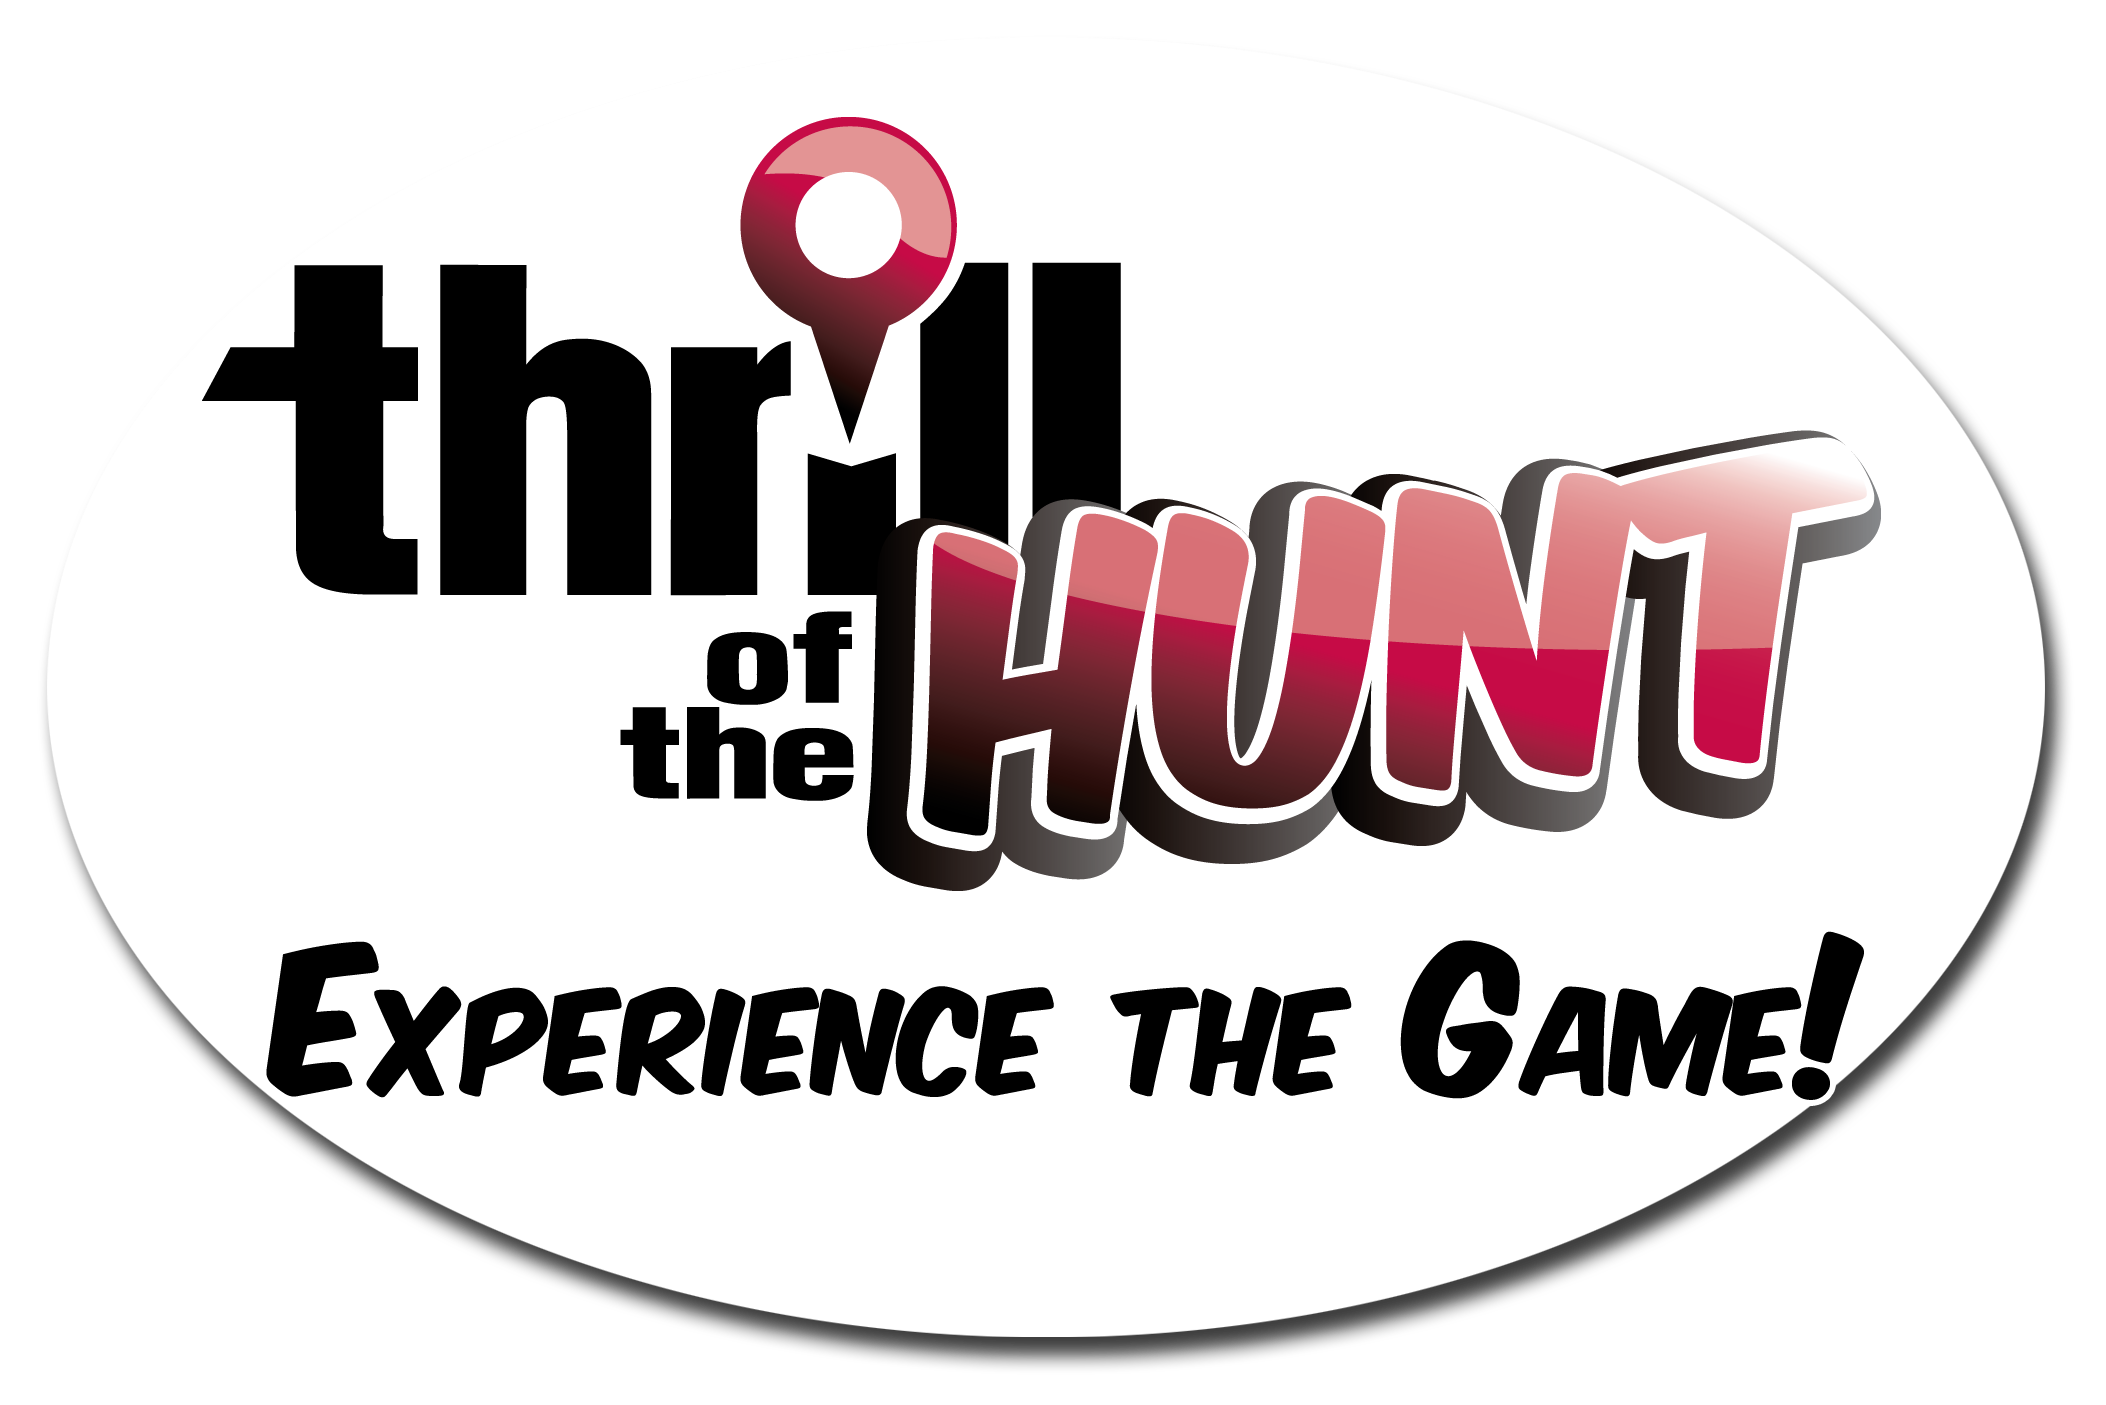 Hunting clipart themed. Thrill of the hunt